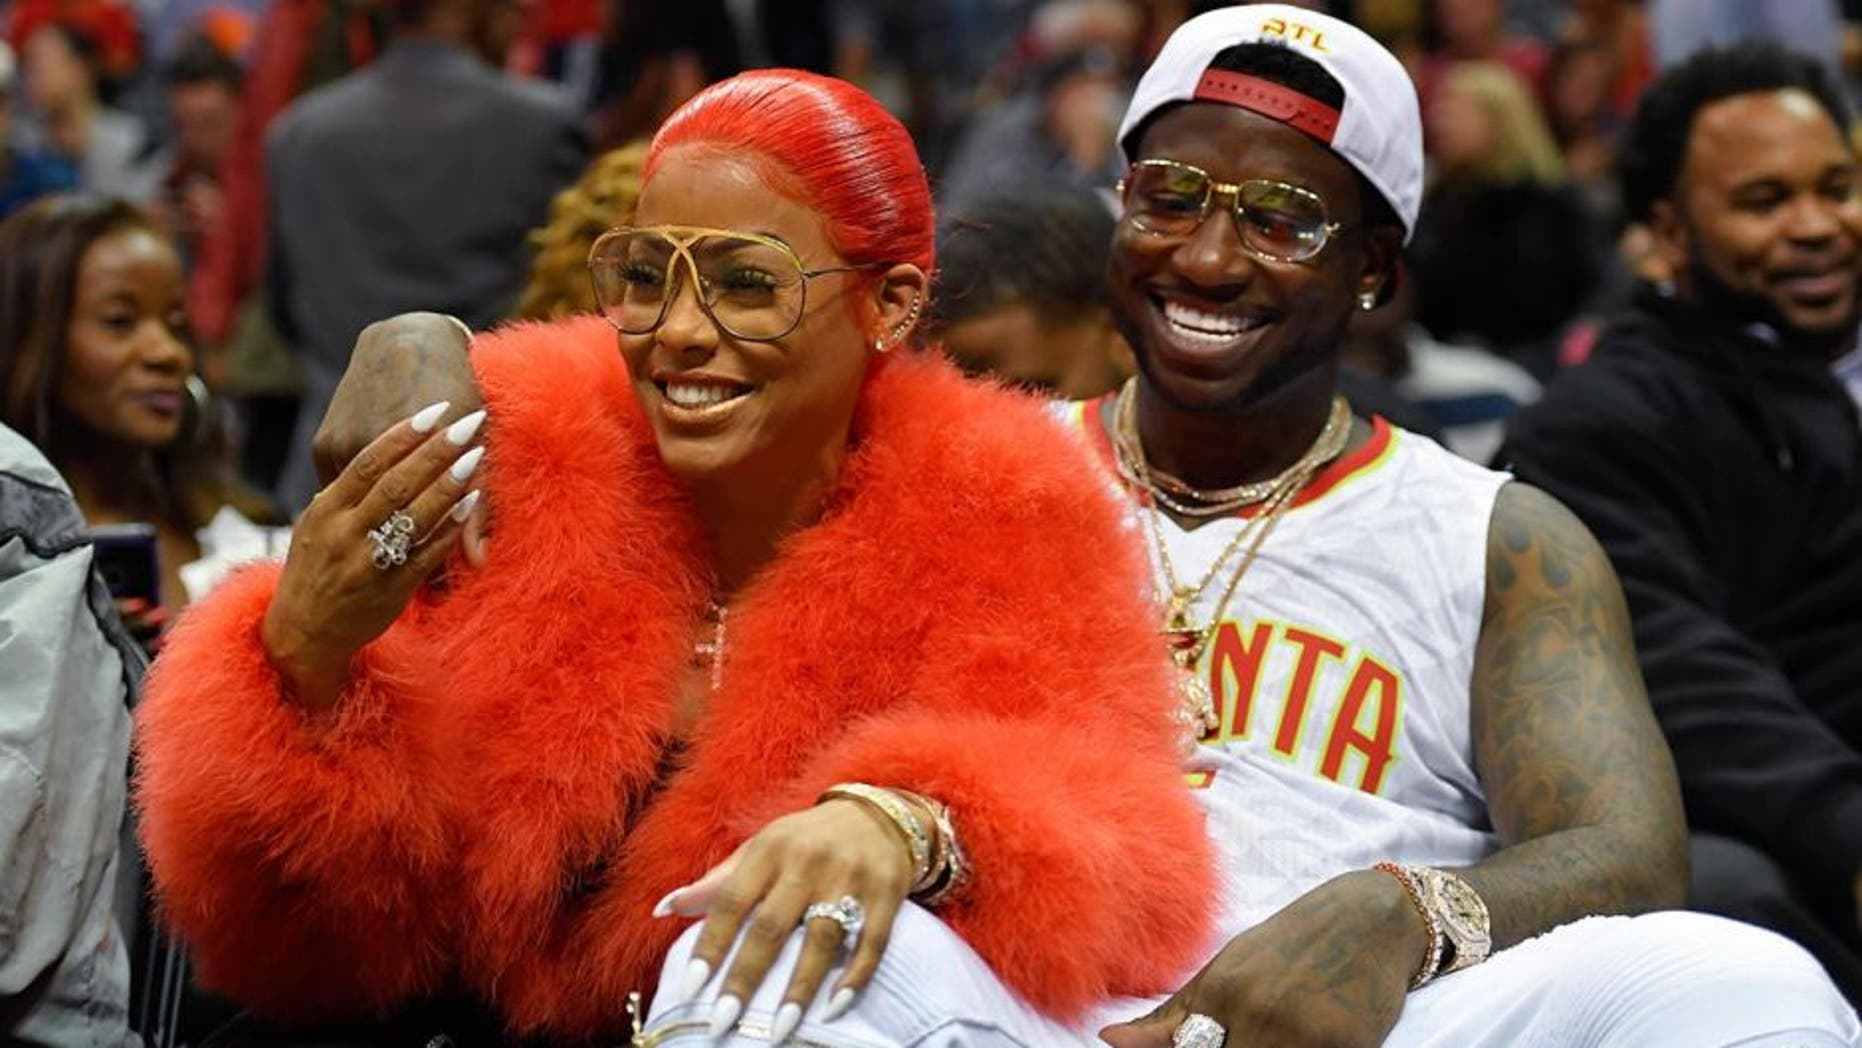 Nov 22, 2016; Atlanta, GA, USA; Recording artist Gucci Mane reacts with Keyshia Ka'oir after being engaged during a time out during the New Orleans Pelicans and Atlanta Hawks game during the second half at Philips Arena. The Pelicans defeated the Hawks 112-96.Mandatory Credit: Dale Zanine-USA TODAY Sports